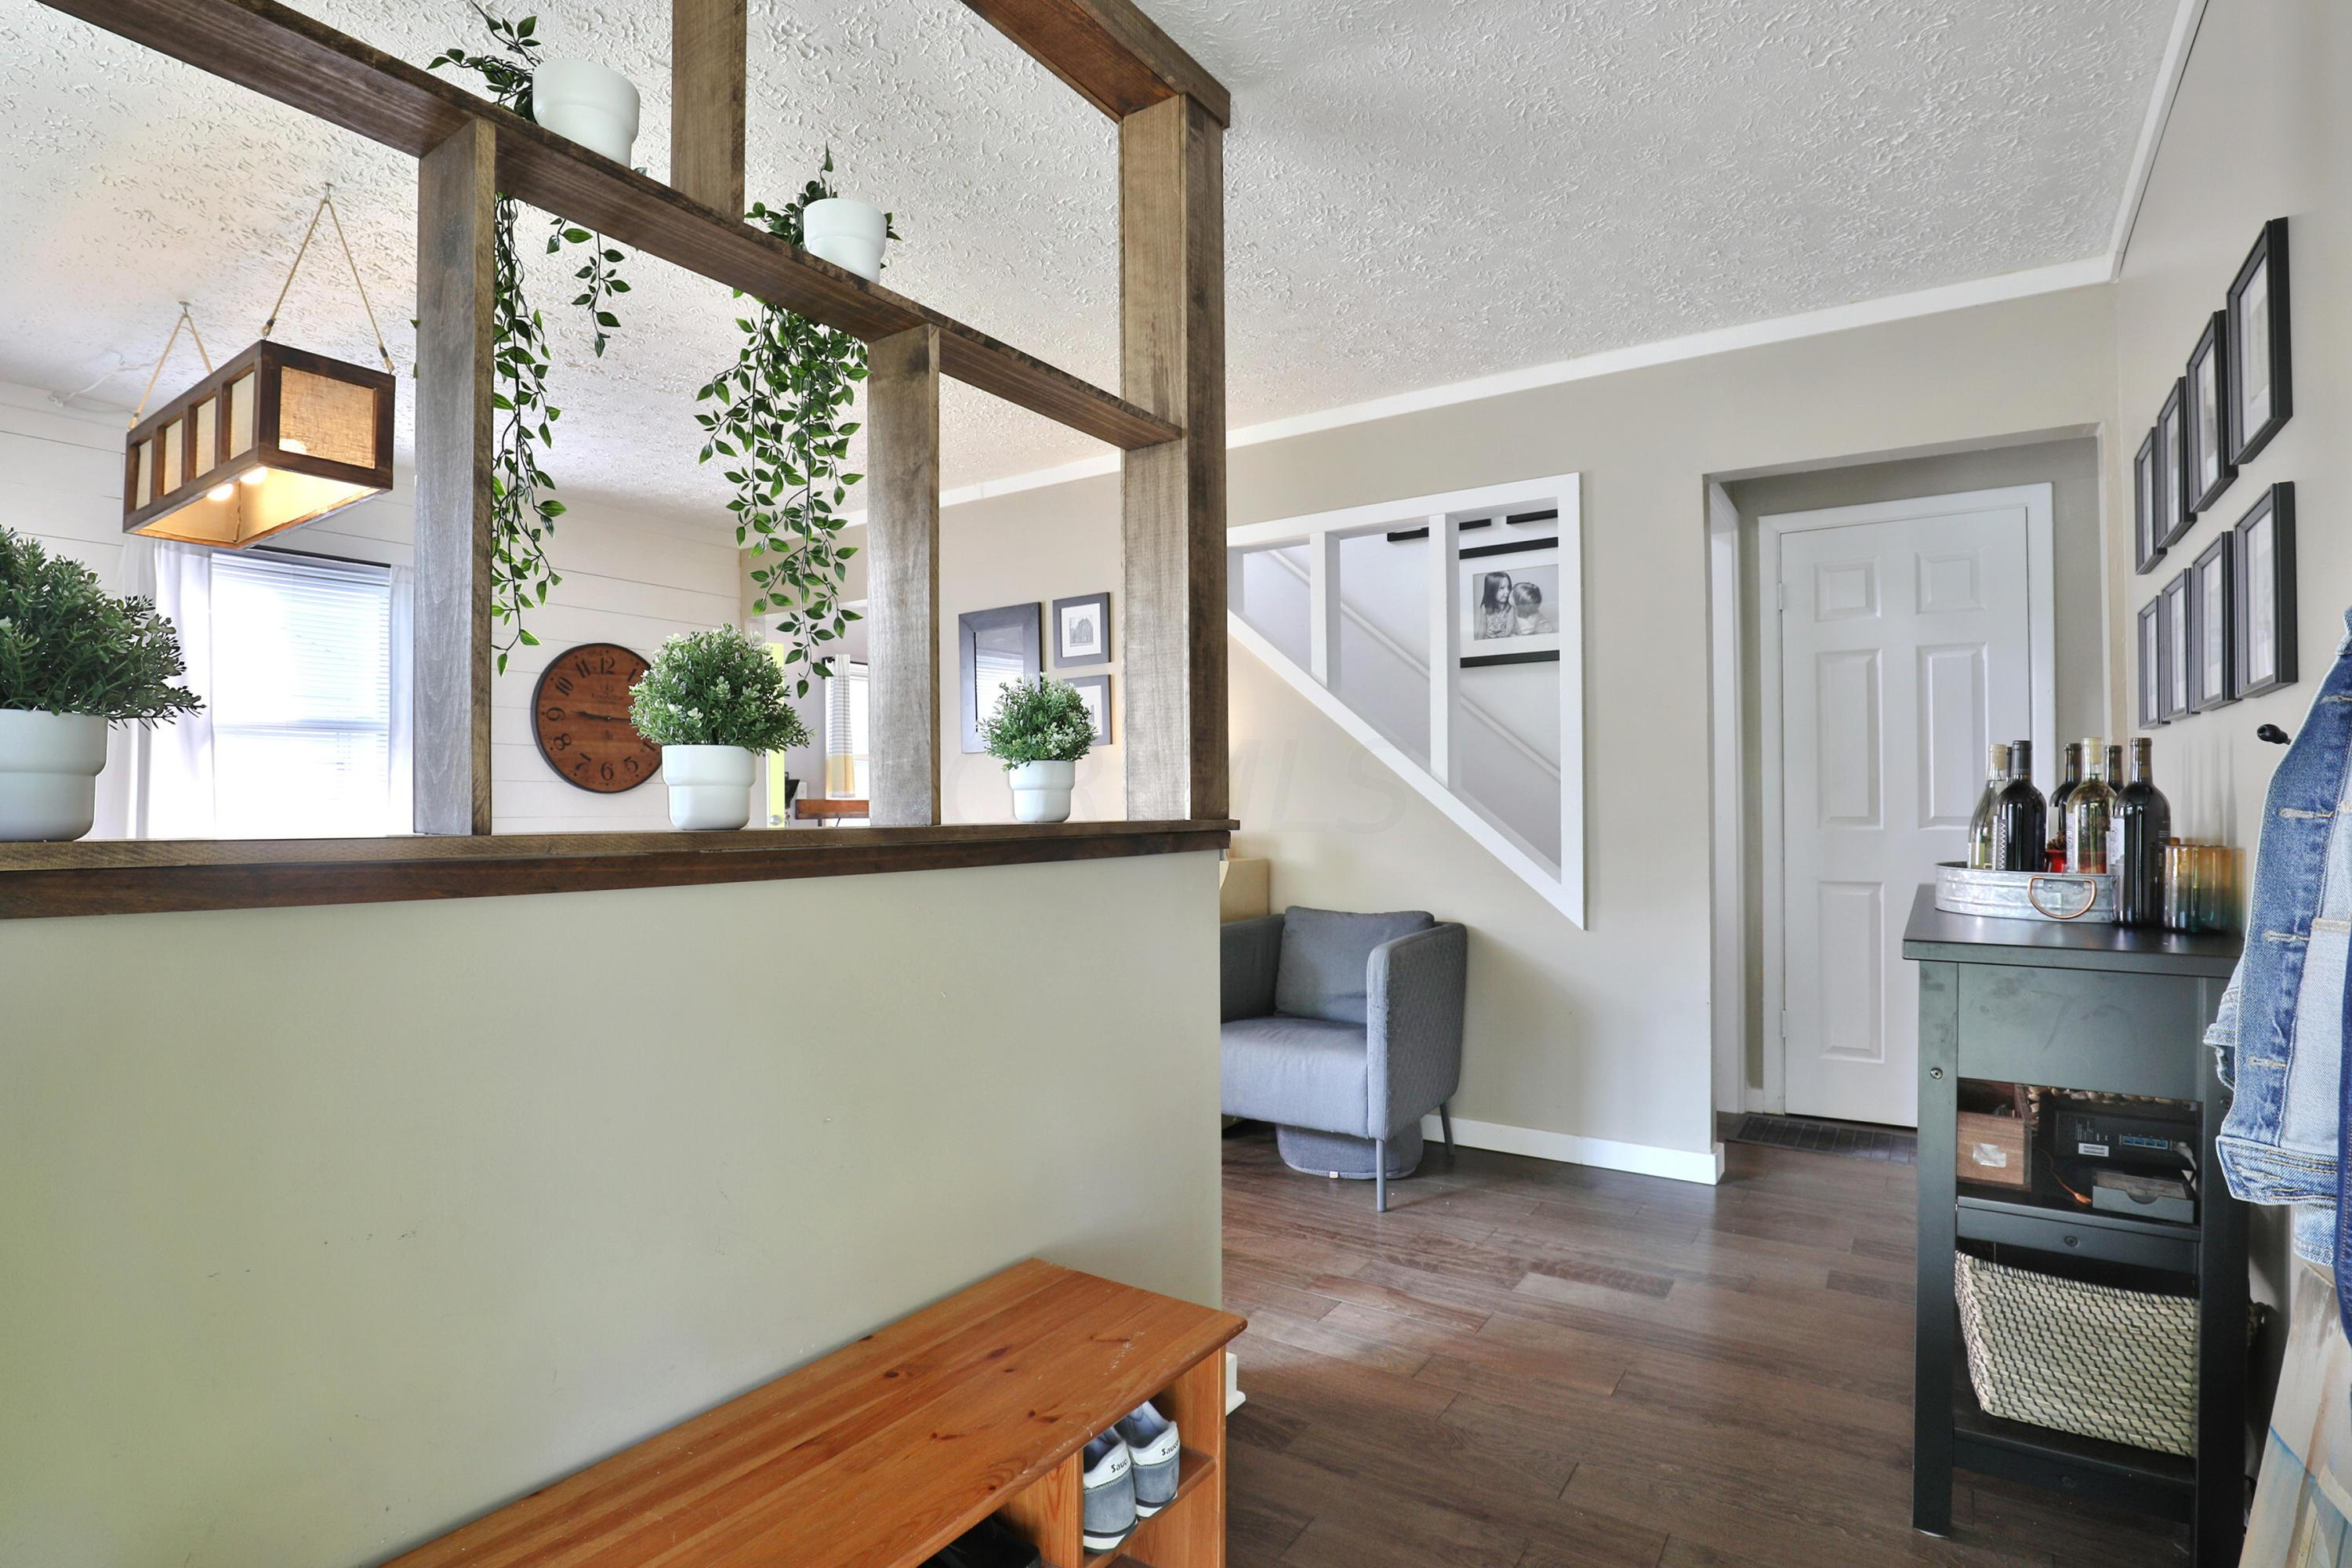 Hallway leading to knock out feature in